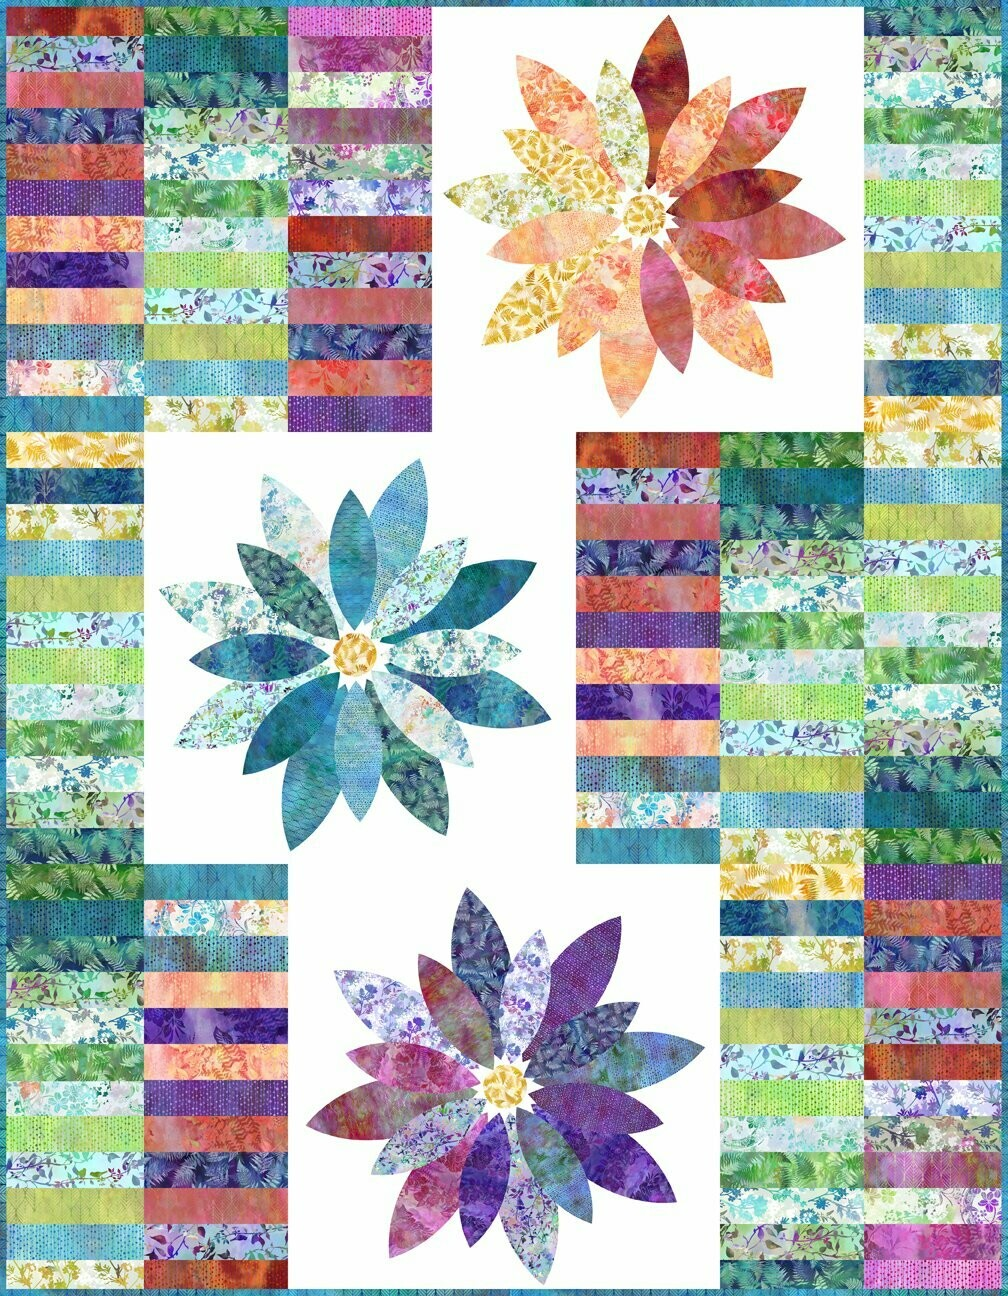 95395 Blooms Quilt fabric Kit $298.65